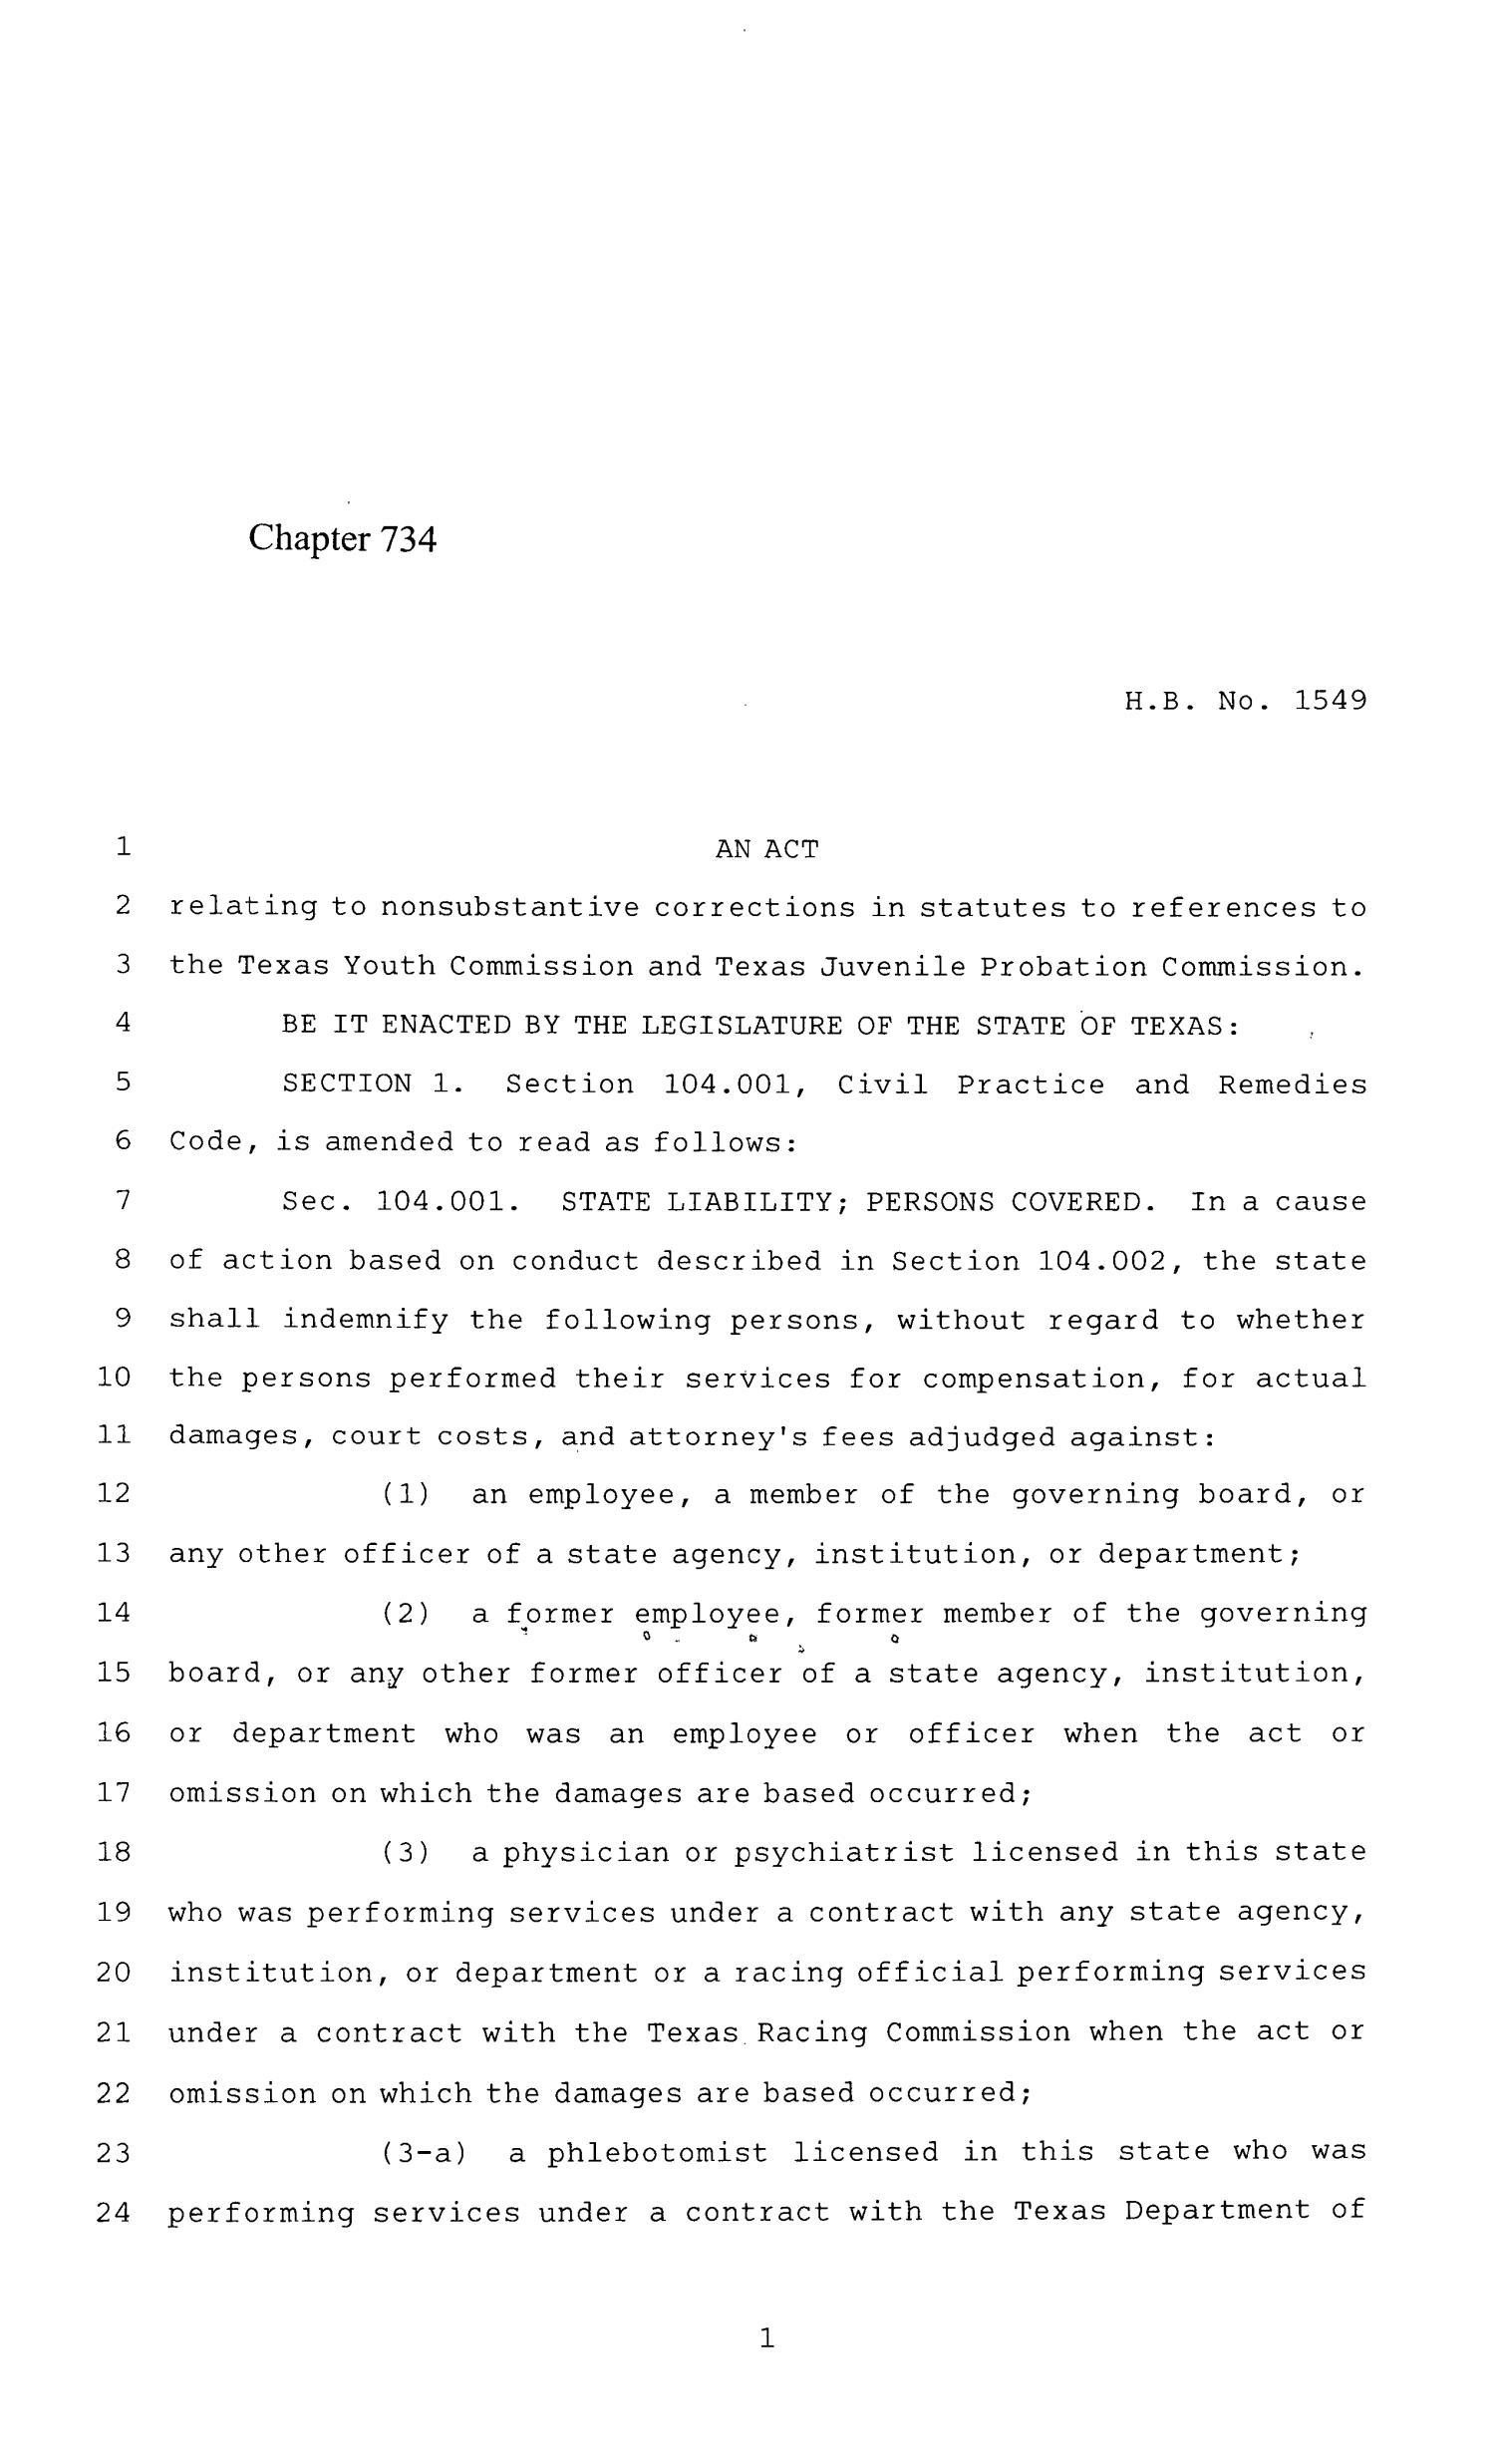 84th Texas Legislature, Regular Session, House Bill 1549, Chapter 734                                                                                                      [Sequence #]: 1 of 113